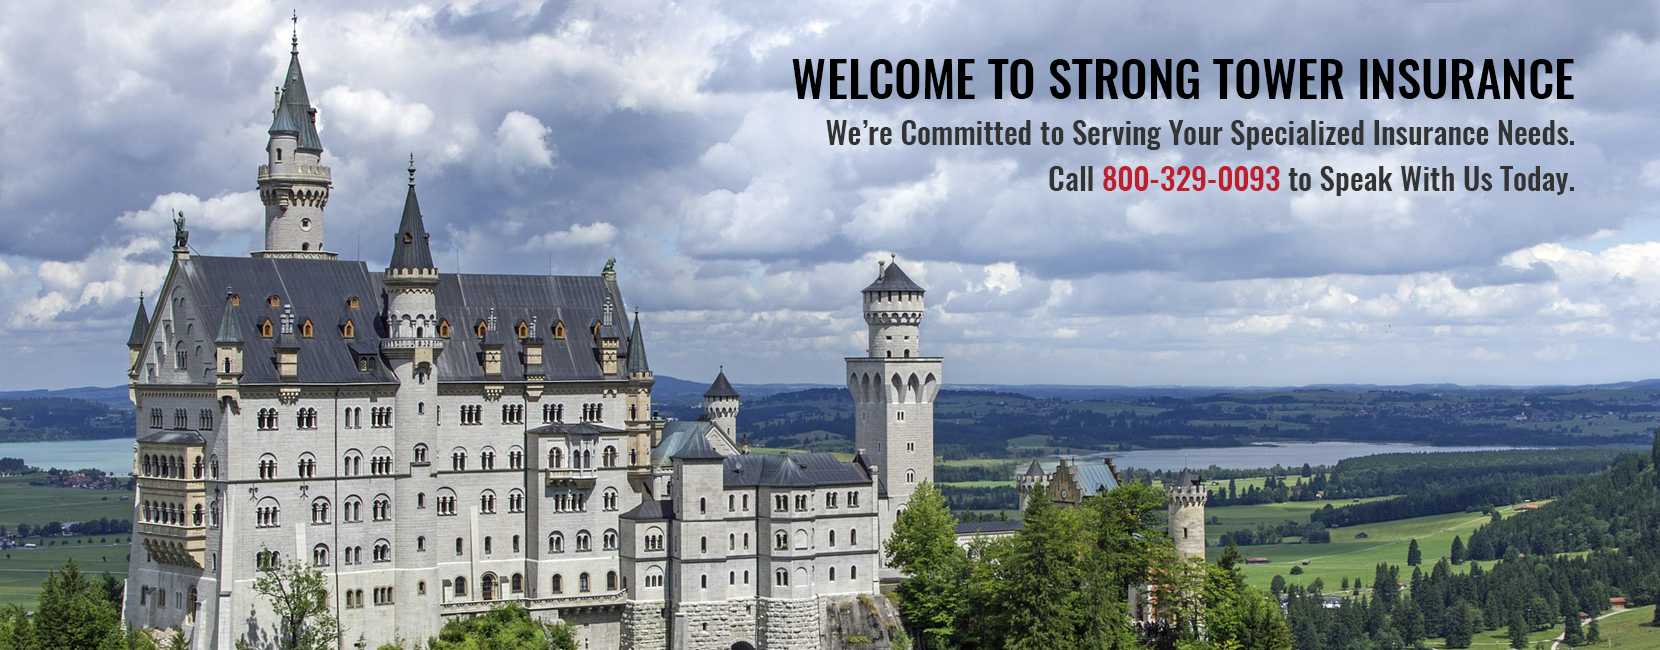 Welcome to Strong Tower Insurance. Call 800-329-0093